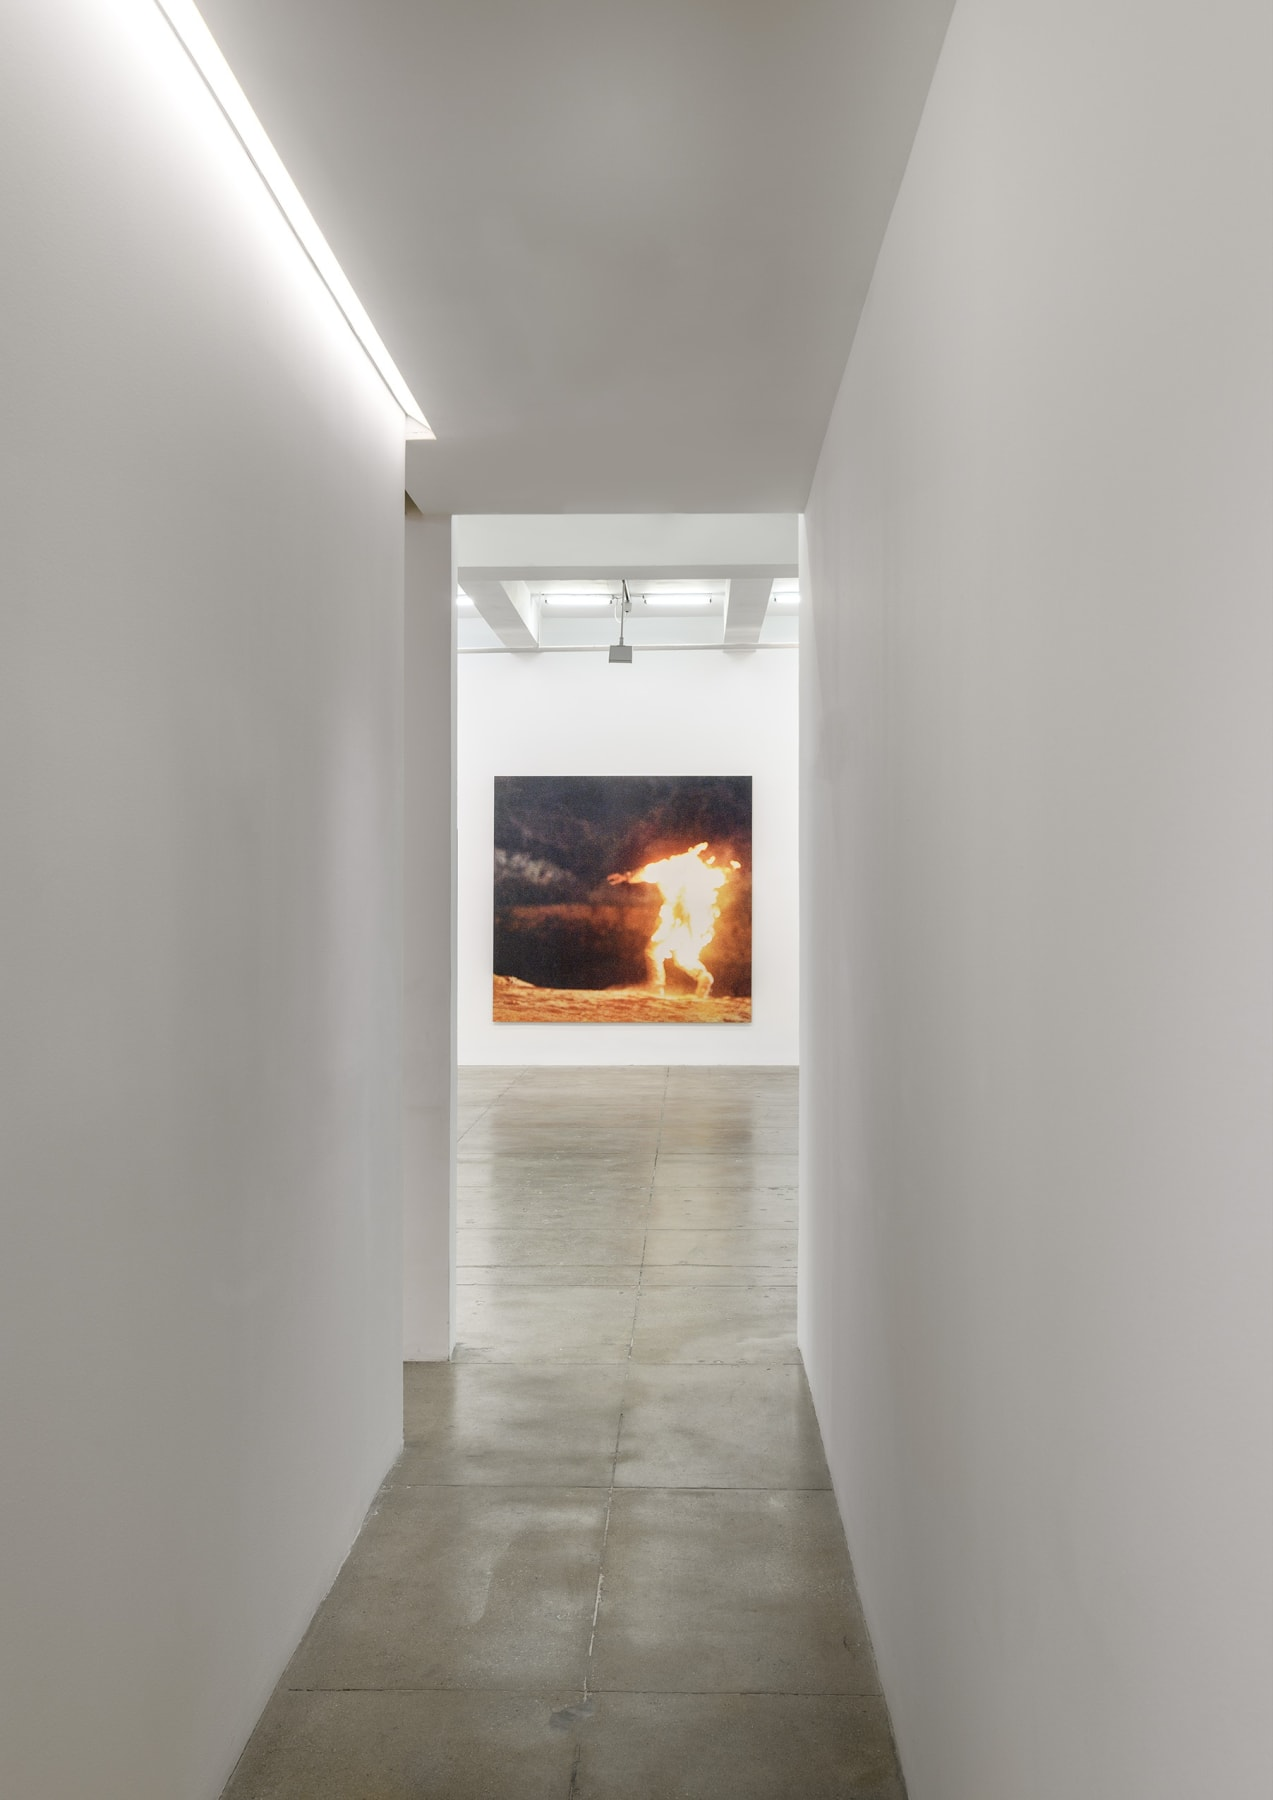 A large photograph of a person set on fire is visible at the end of a long white hallway.